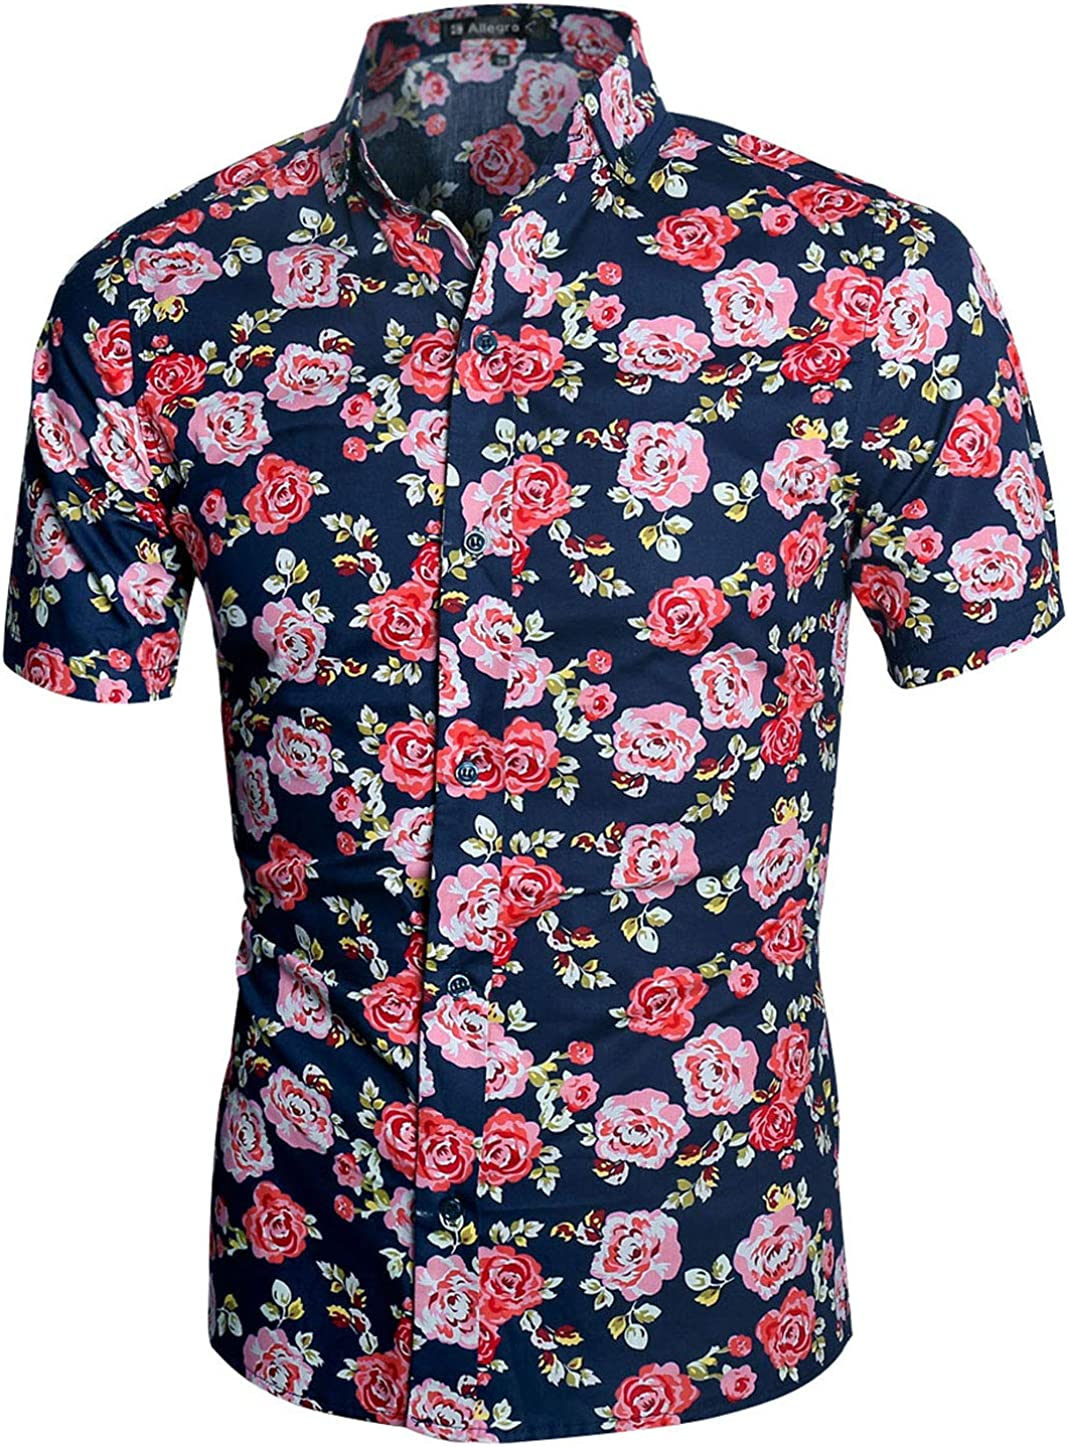 Domple Mens Floral Print Buttons Short Sleeve Hawaiian Plus Size Shirts